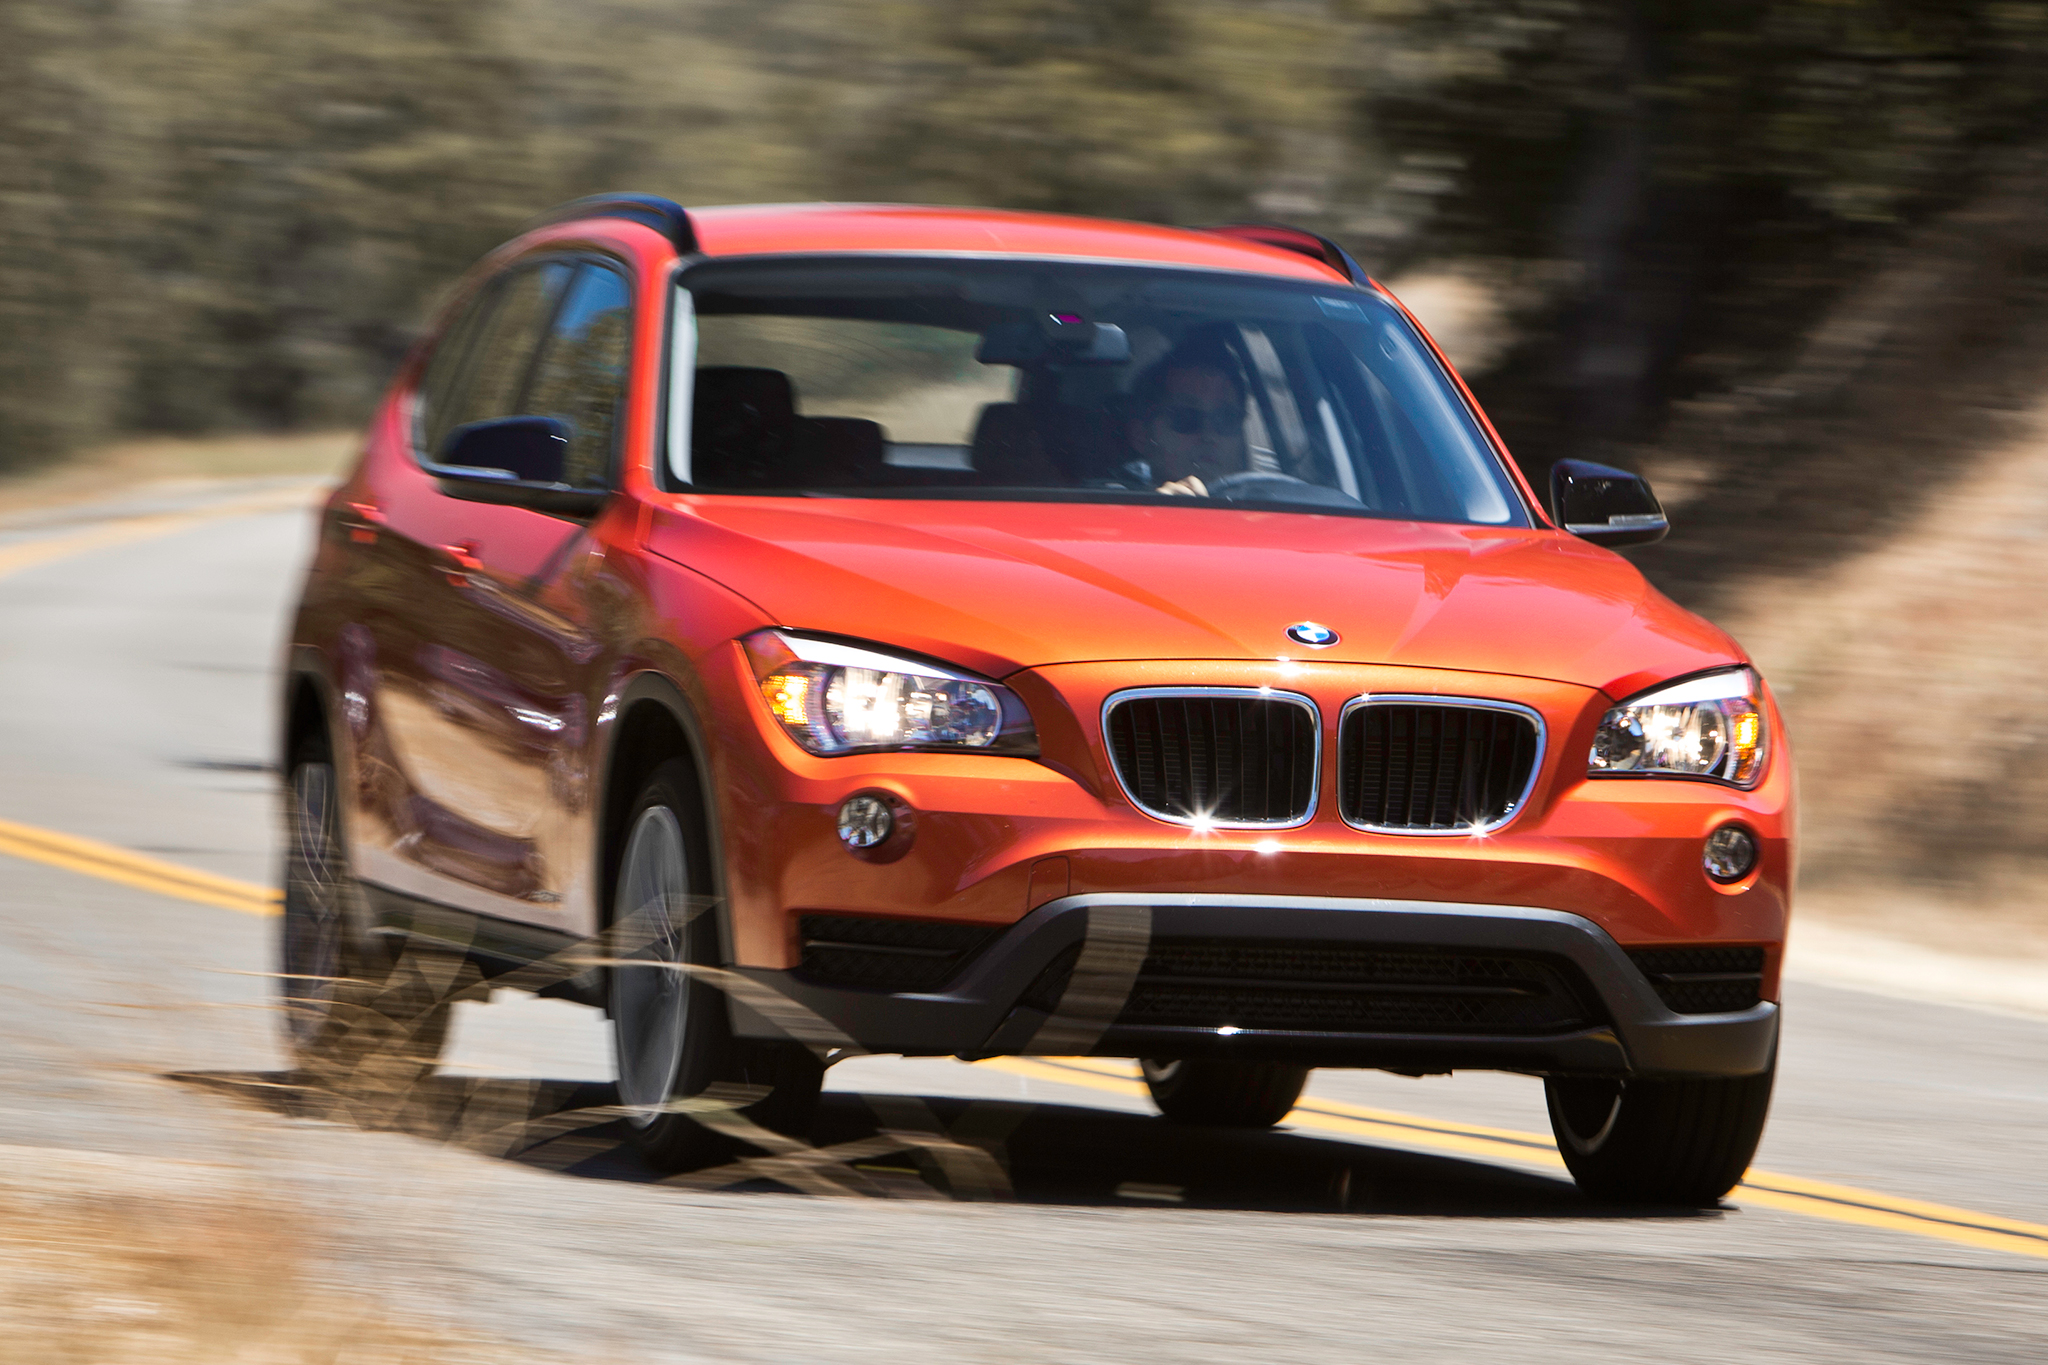 2014 Motor Trend SUV of the Year Contenders